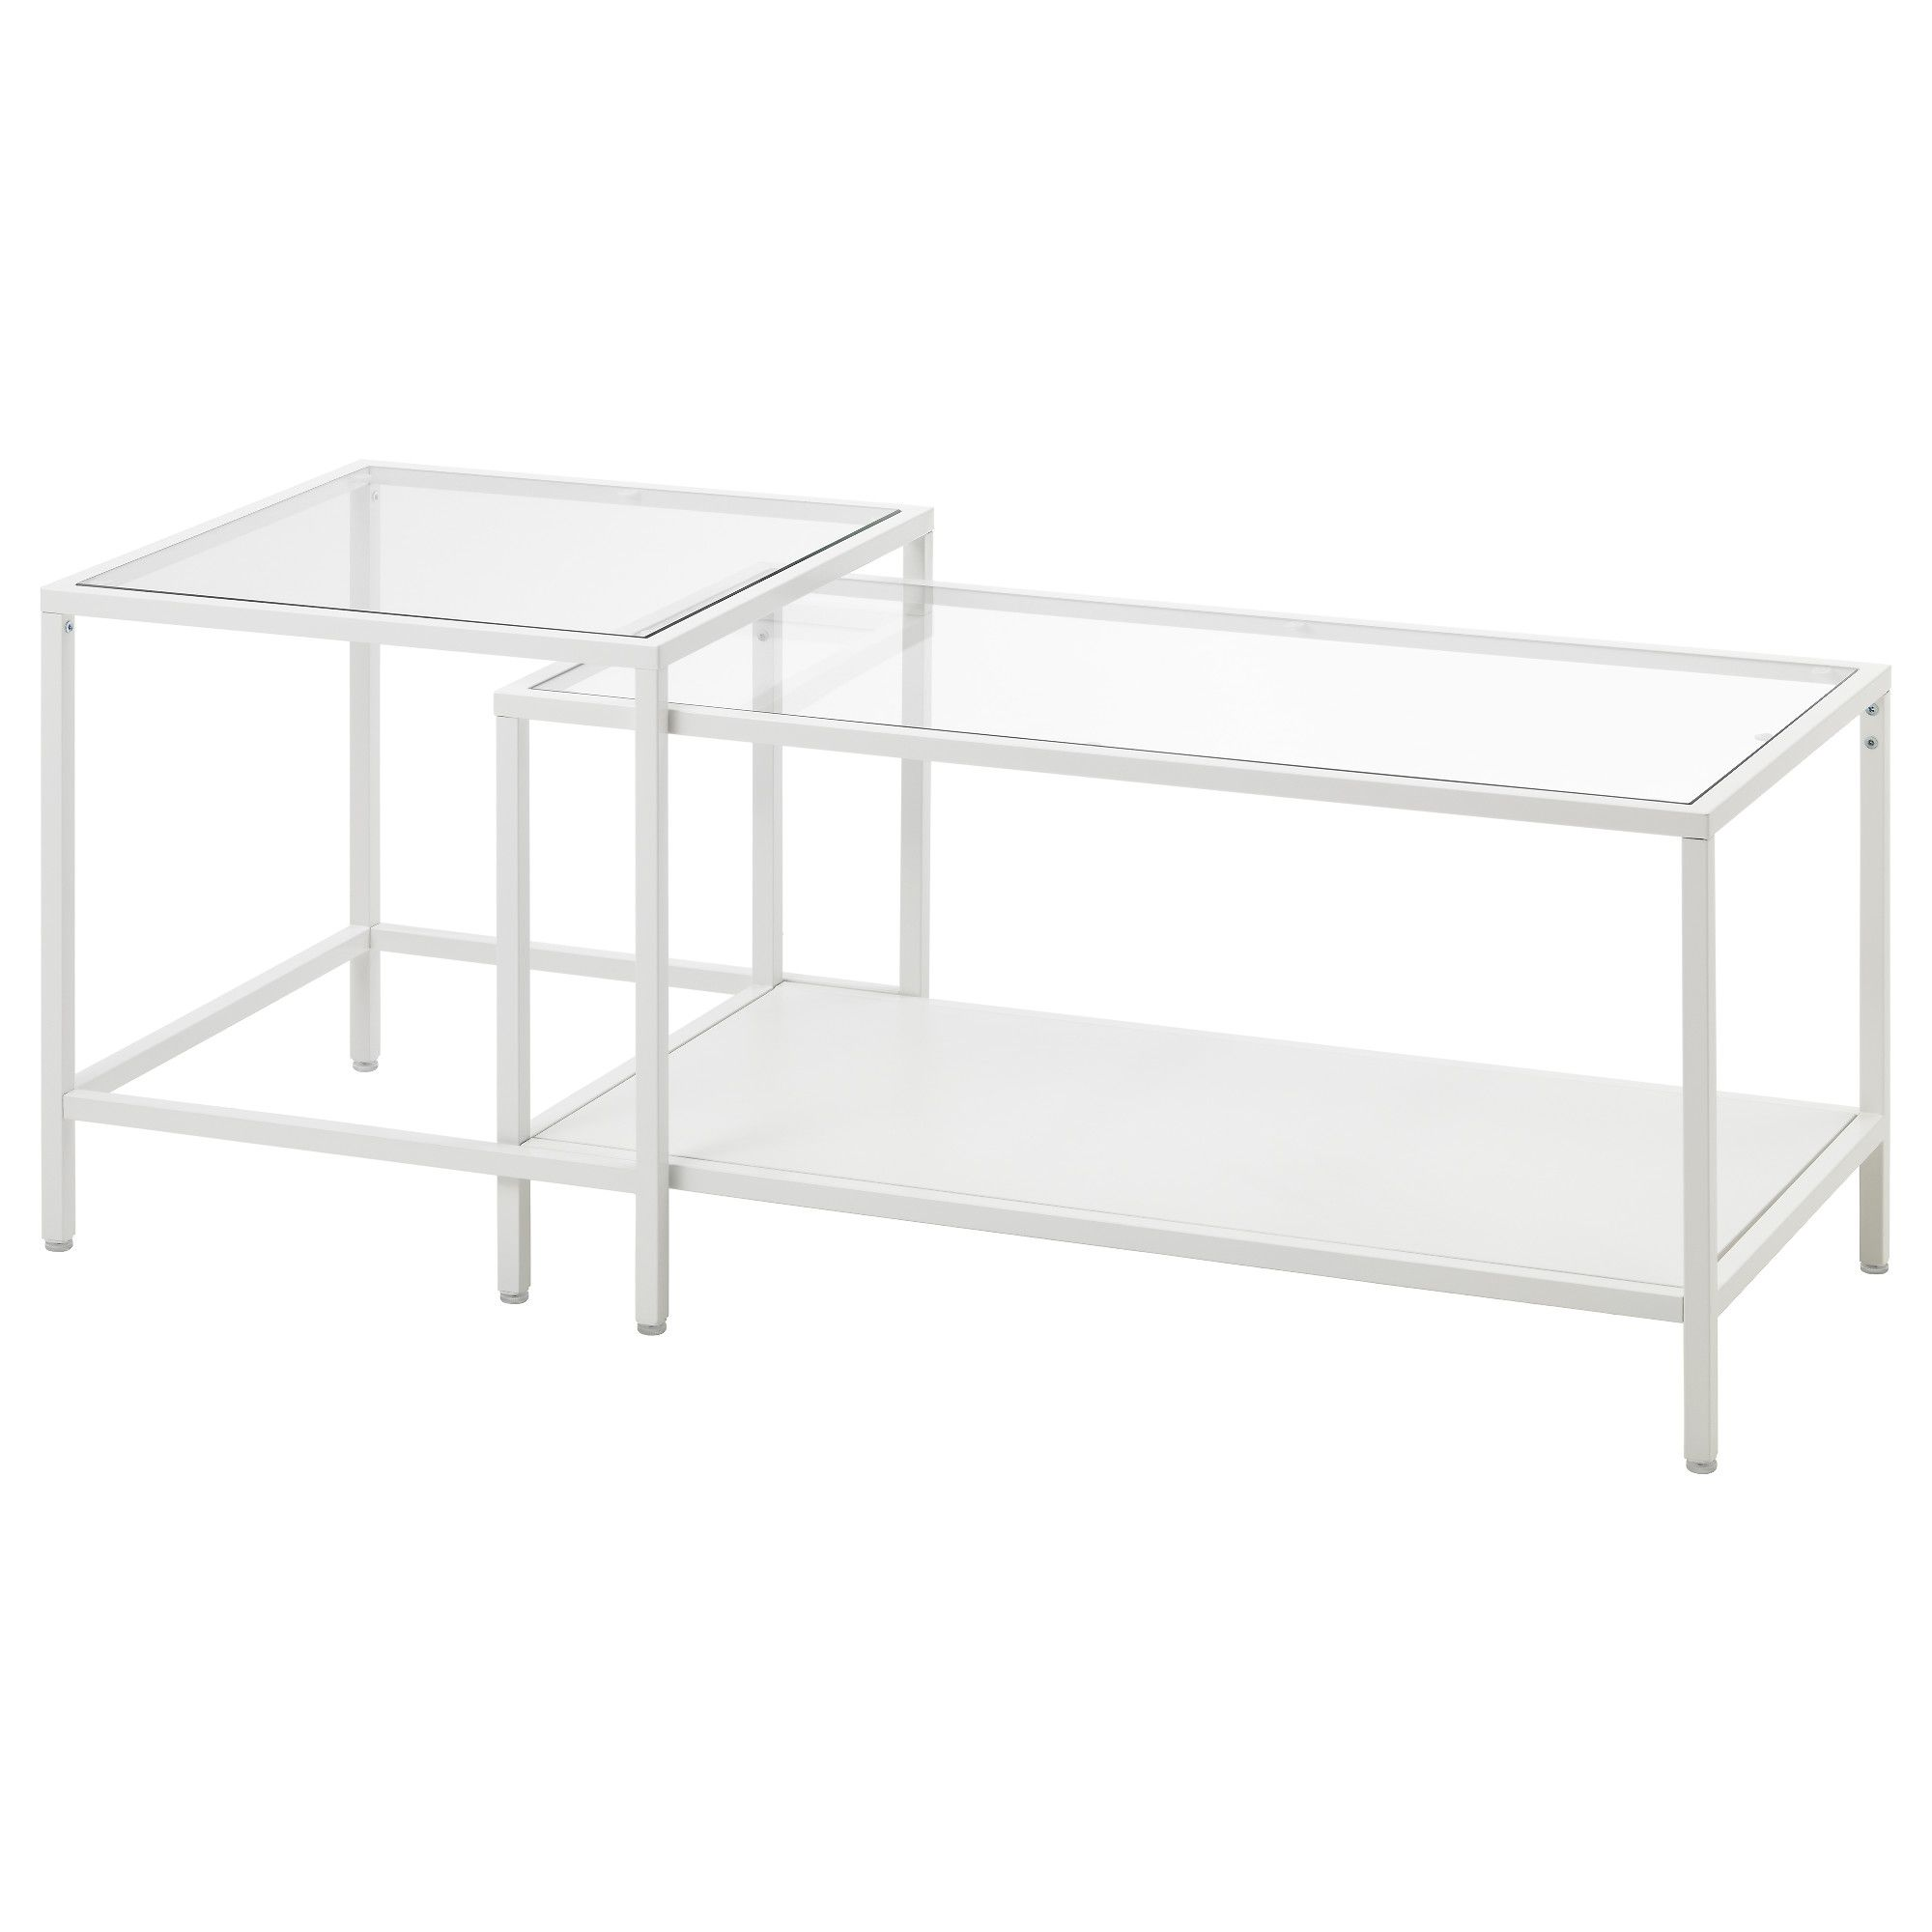 Ikea Couchtisch Mit Glas Home Furniture Store - Modern Furnishings & Décor | Ikea Tischplatten, Satztische, Wohnzimmertische